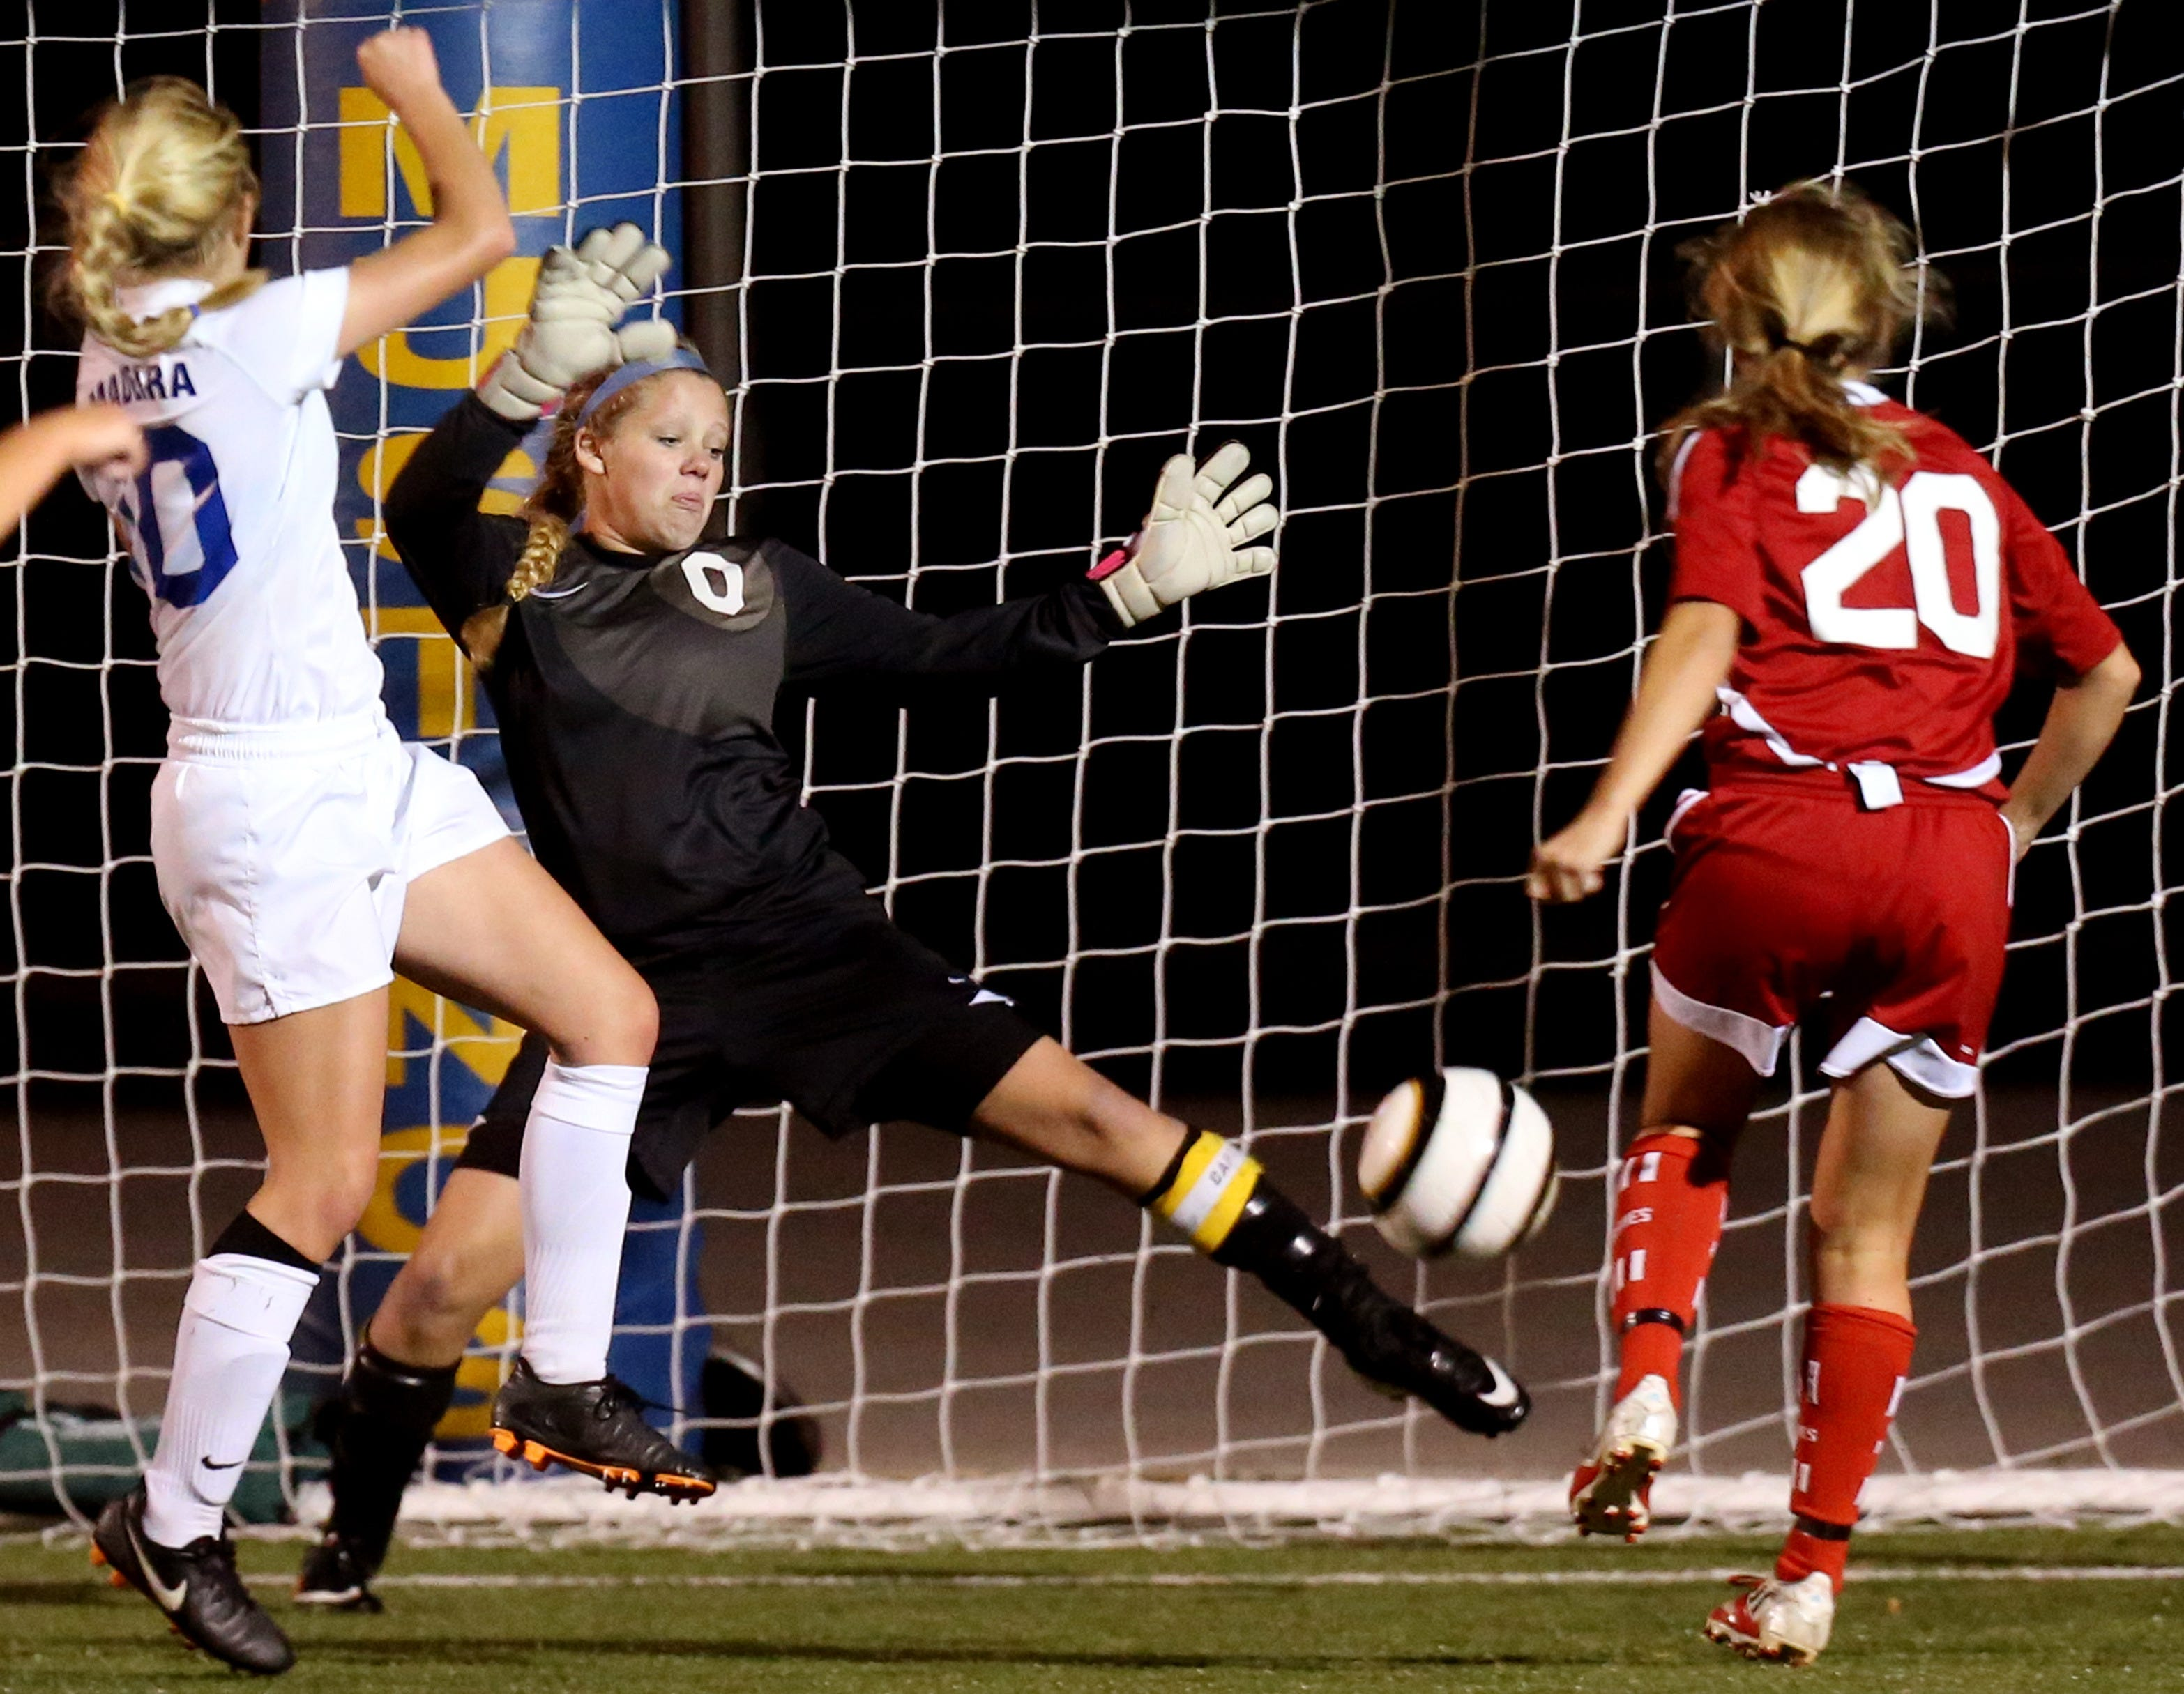 Indian Hill's Sophie Bell (20) scored the game-winning goal against Madeira goalkeeper Sarah Mahler (0) in the second half of their game with the Amazons last October.